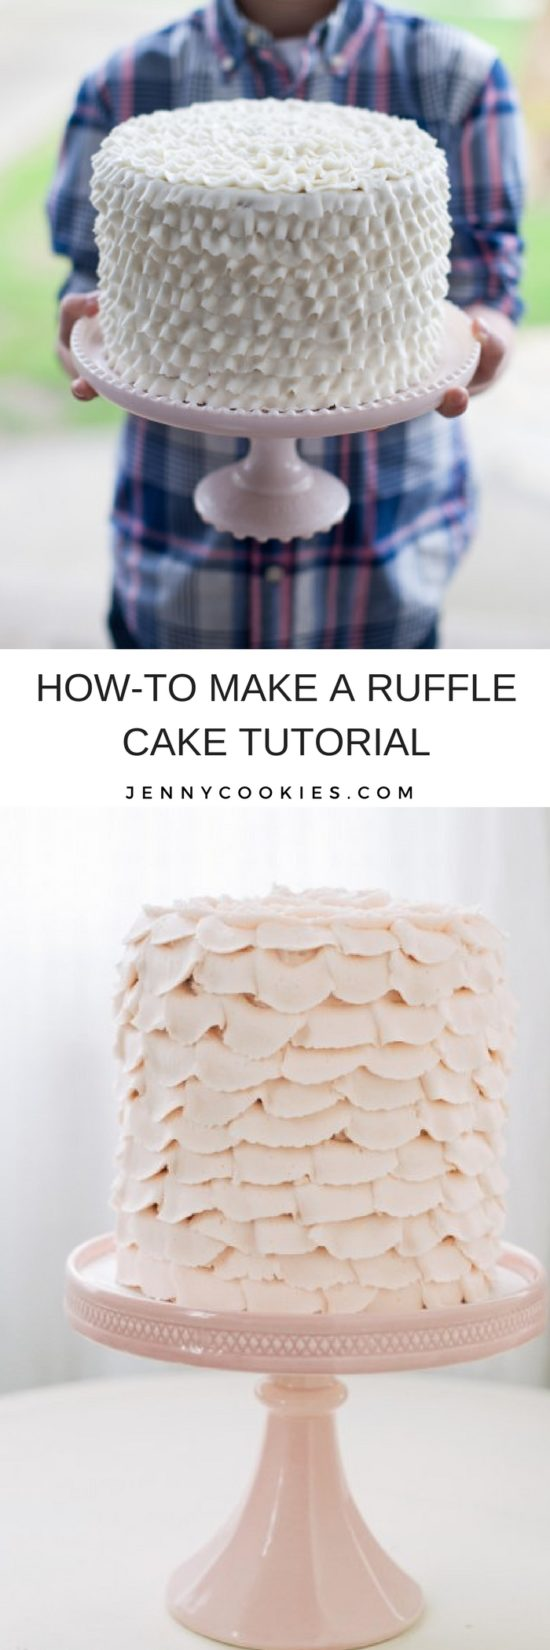 How to Make a Ruffle Cake | ruffle cake tutorial | diy ruffle cake | cake decorating tips | easy cake decor | how to decorate a cake | cake decorating ideas || JennyCookies.com #rufflecake #cakedecorating #caketutorial